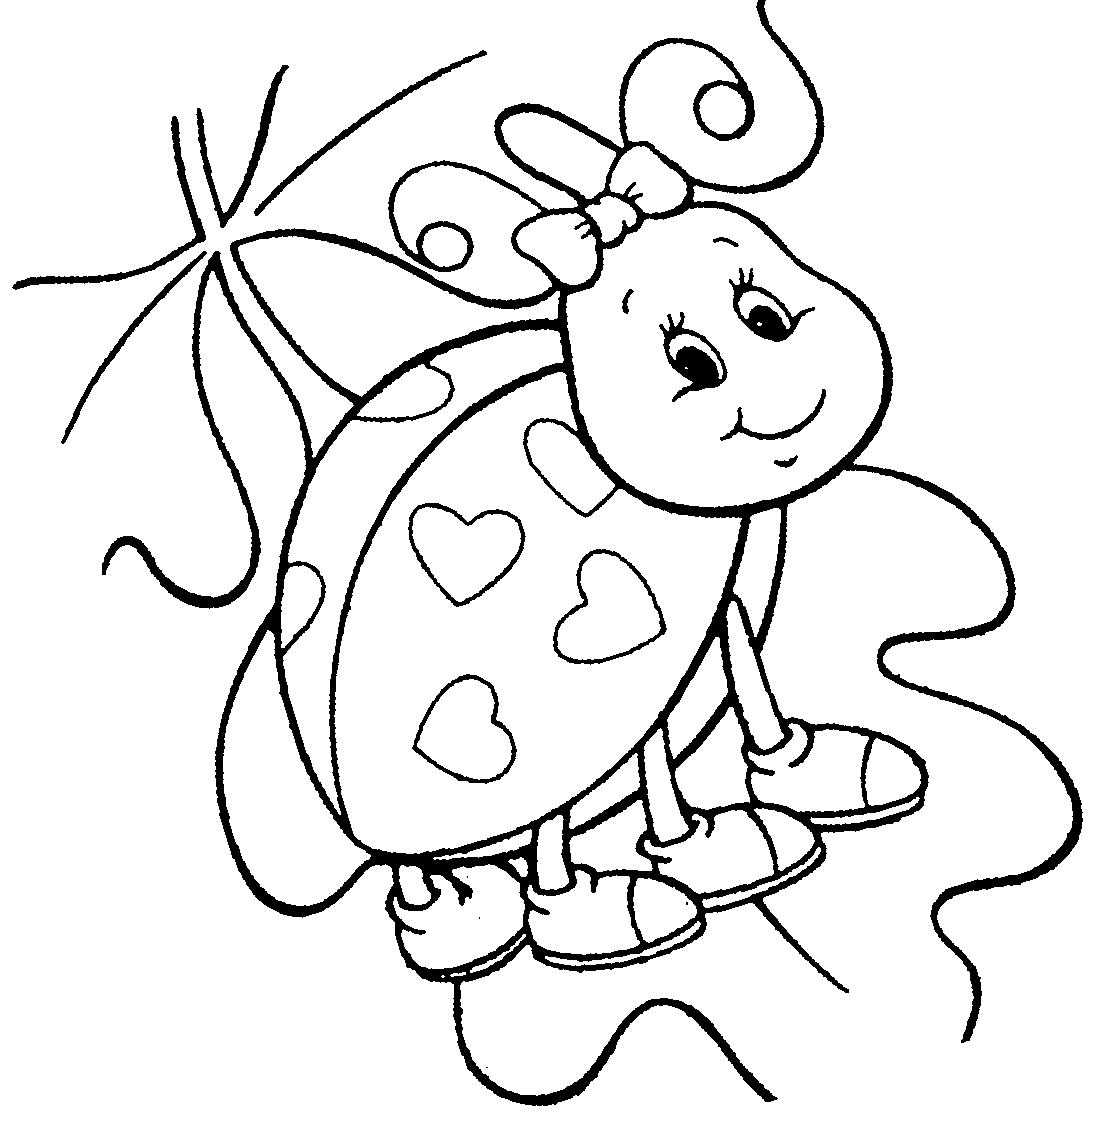 bug coloring pages printable bug coloring pages for kids cool2bkids bug pages coloring